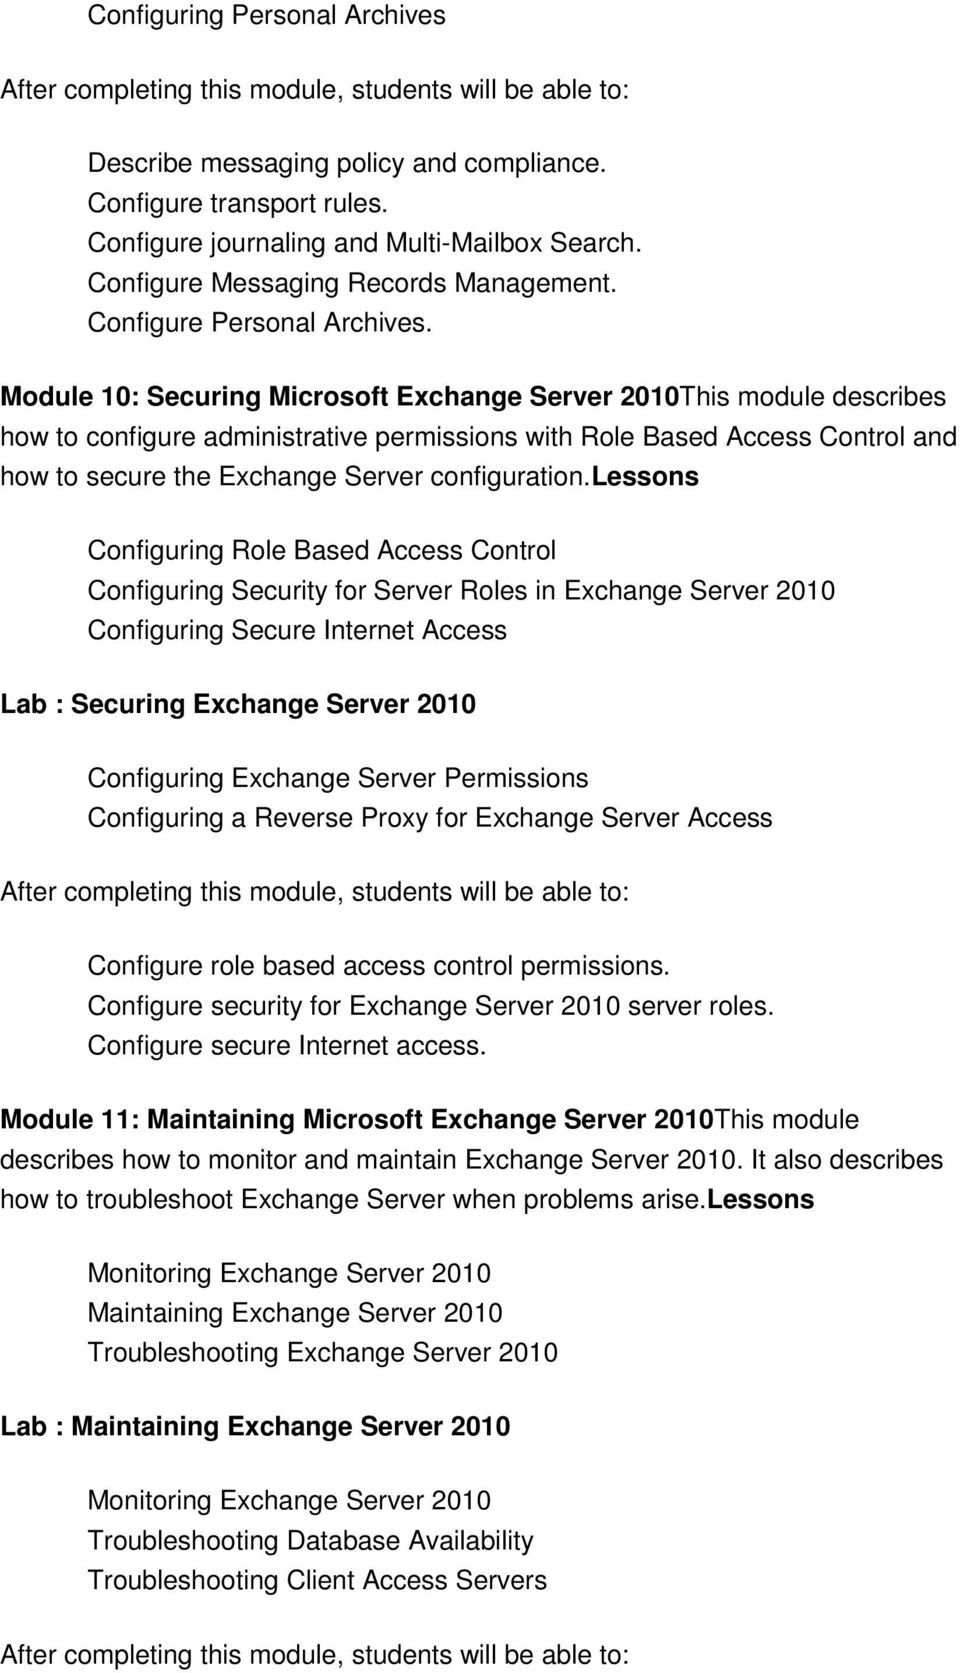 Module 10: Securing Microsoft Exchange Server 2010This module describes how to configure administrative permissions with Role Based Access Control and how to secure the Exchange Server configuration.